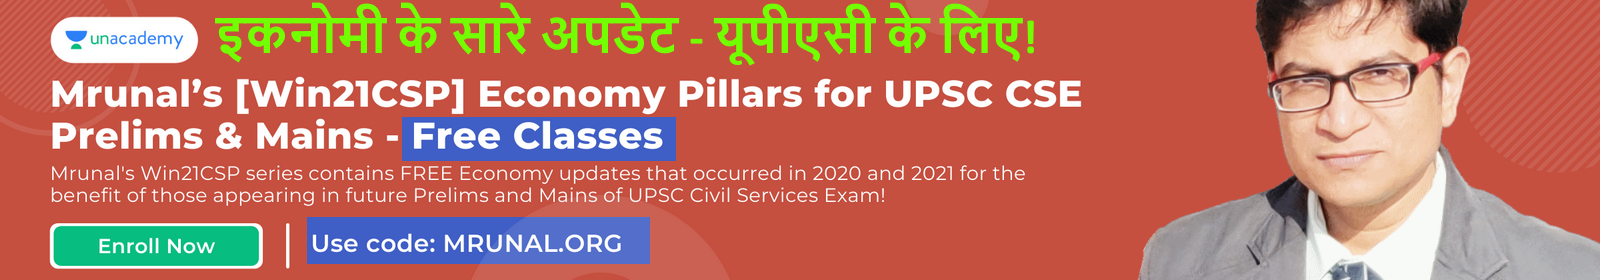 Mrunal's [Win21CSP] Economy Pillars for UPSC CSE Prelims & Mains - Free Classes